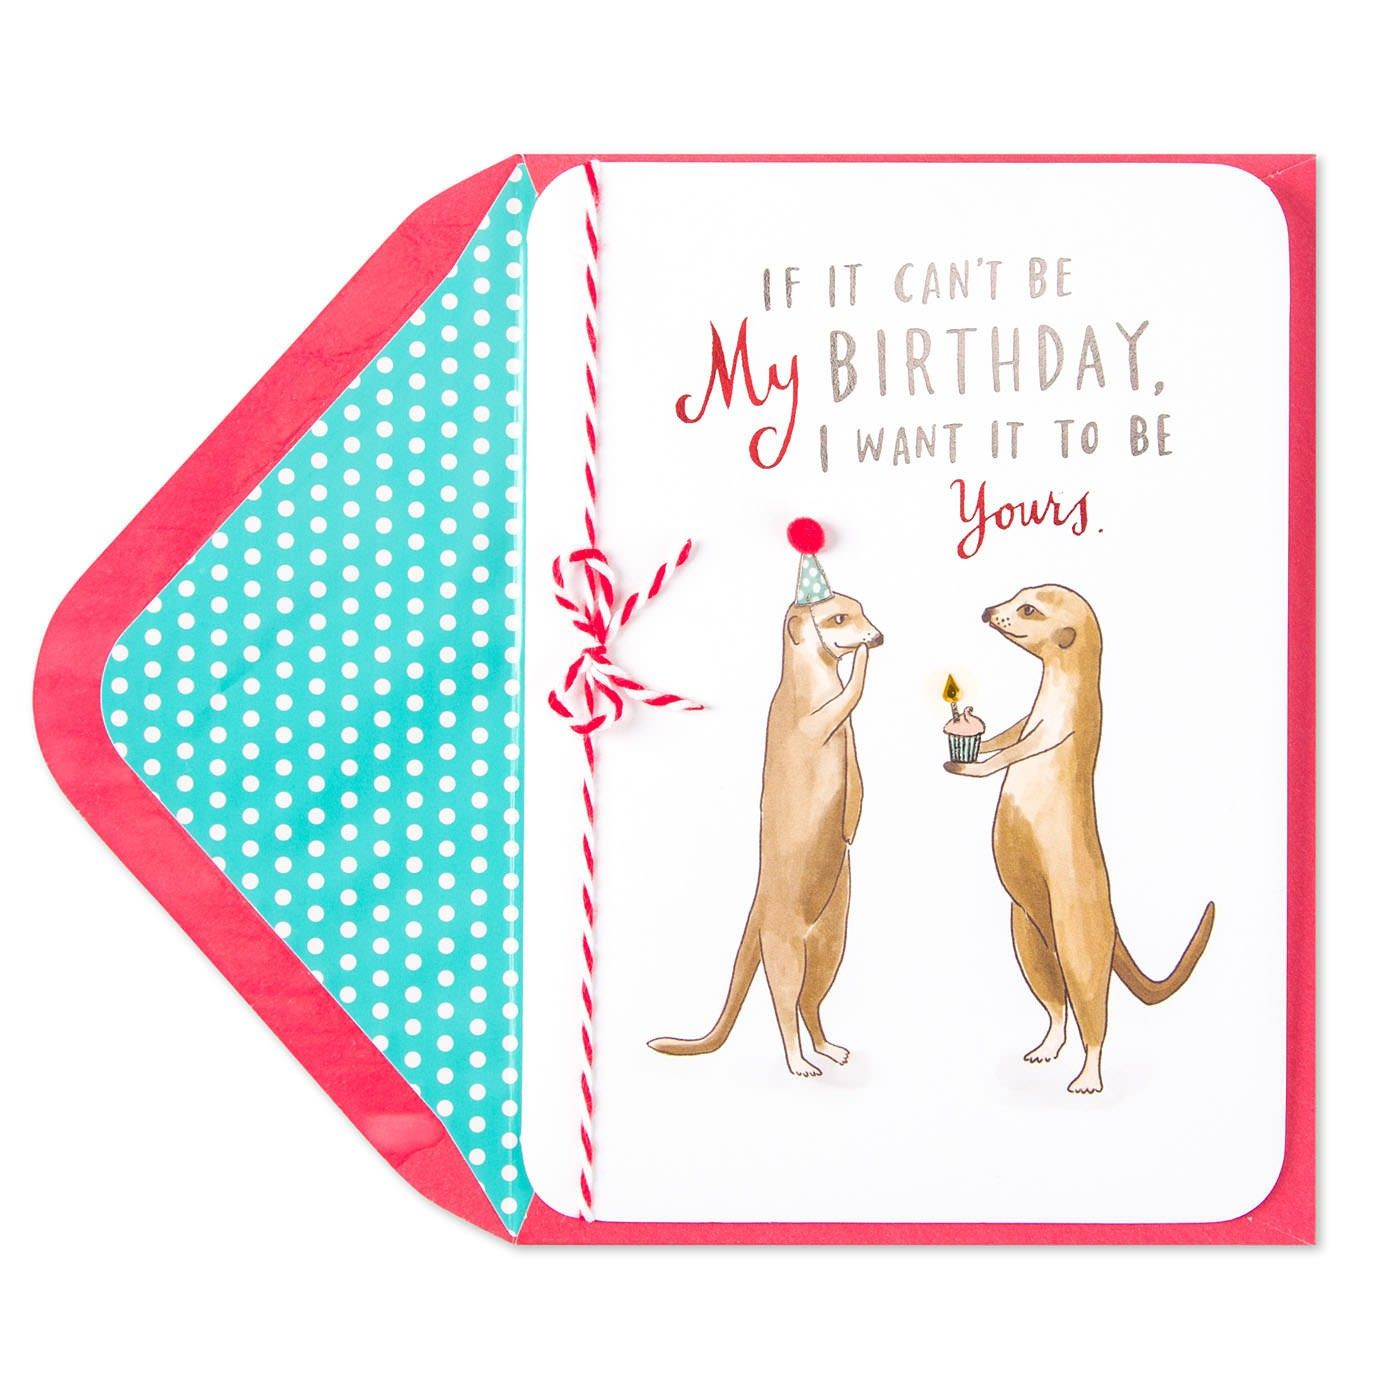 Meerkats Birthday Card